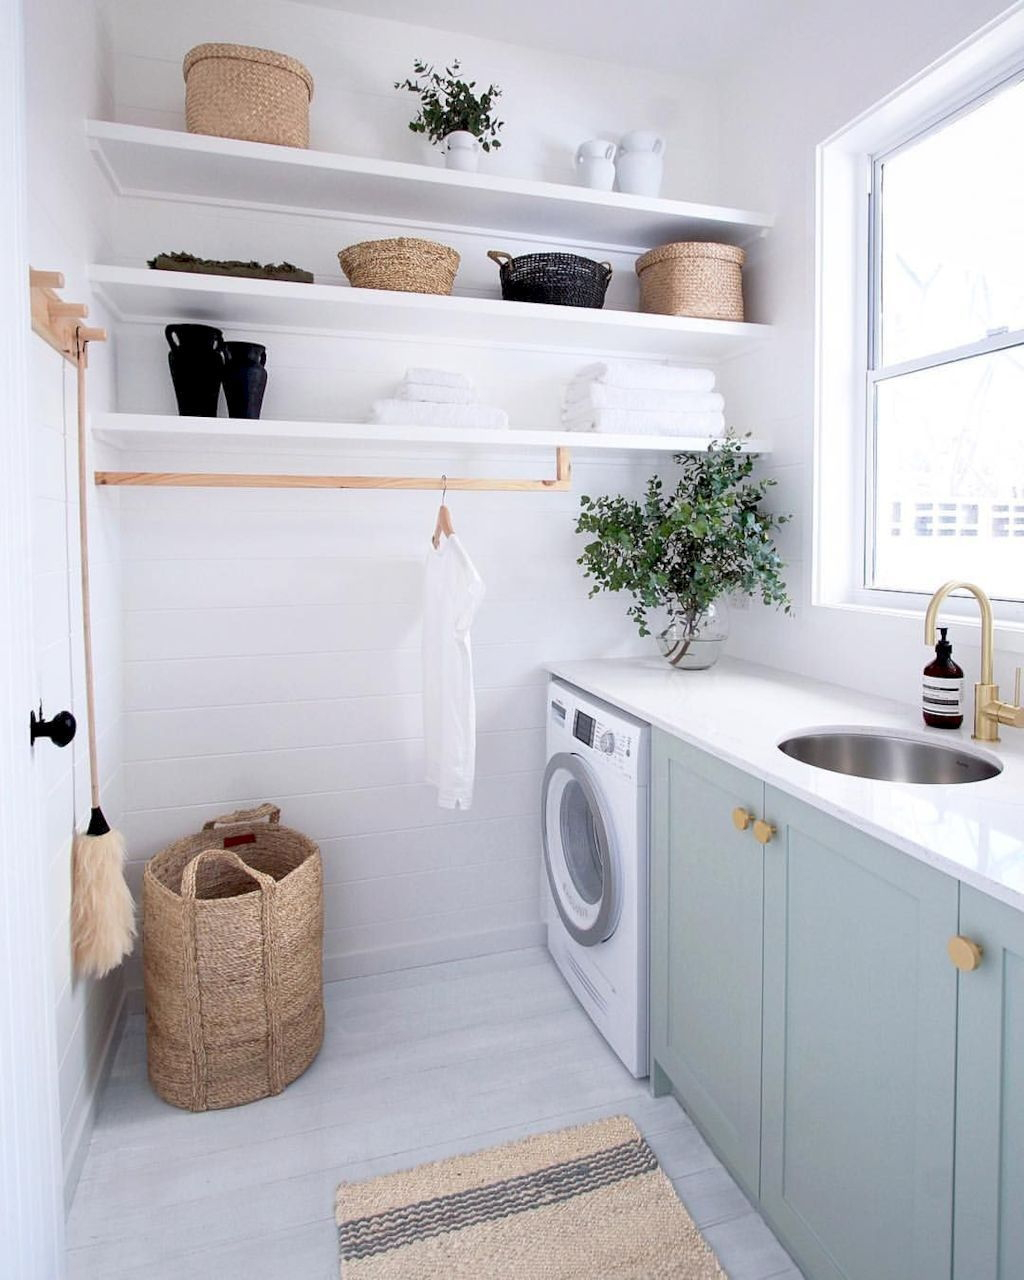 Photo of Laundry room with all white walls and floor, subtle mint cabinets and a single washer/dryer unit.